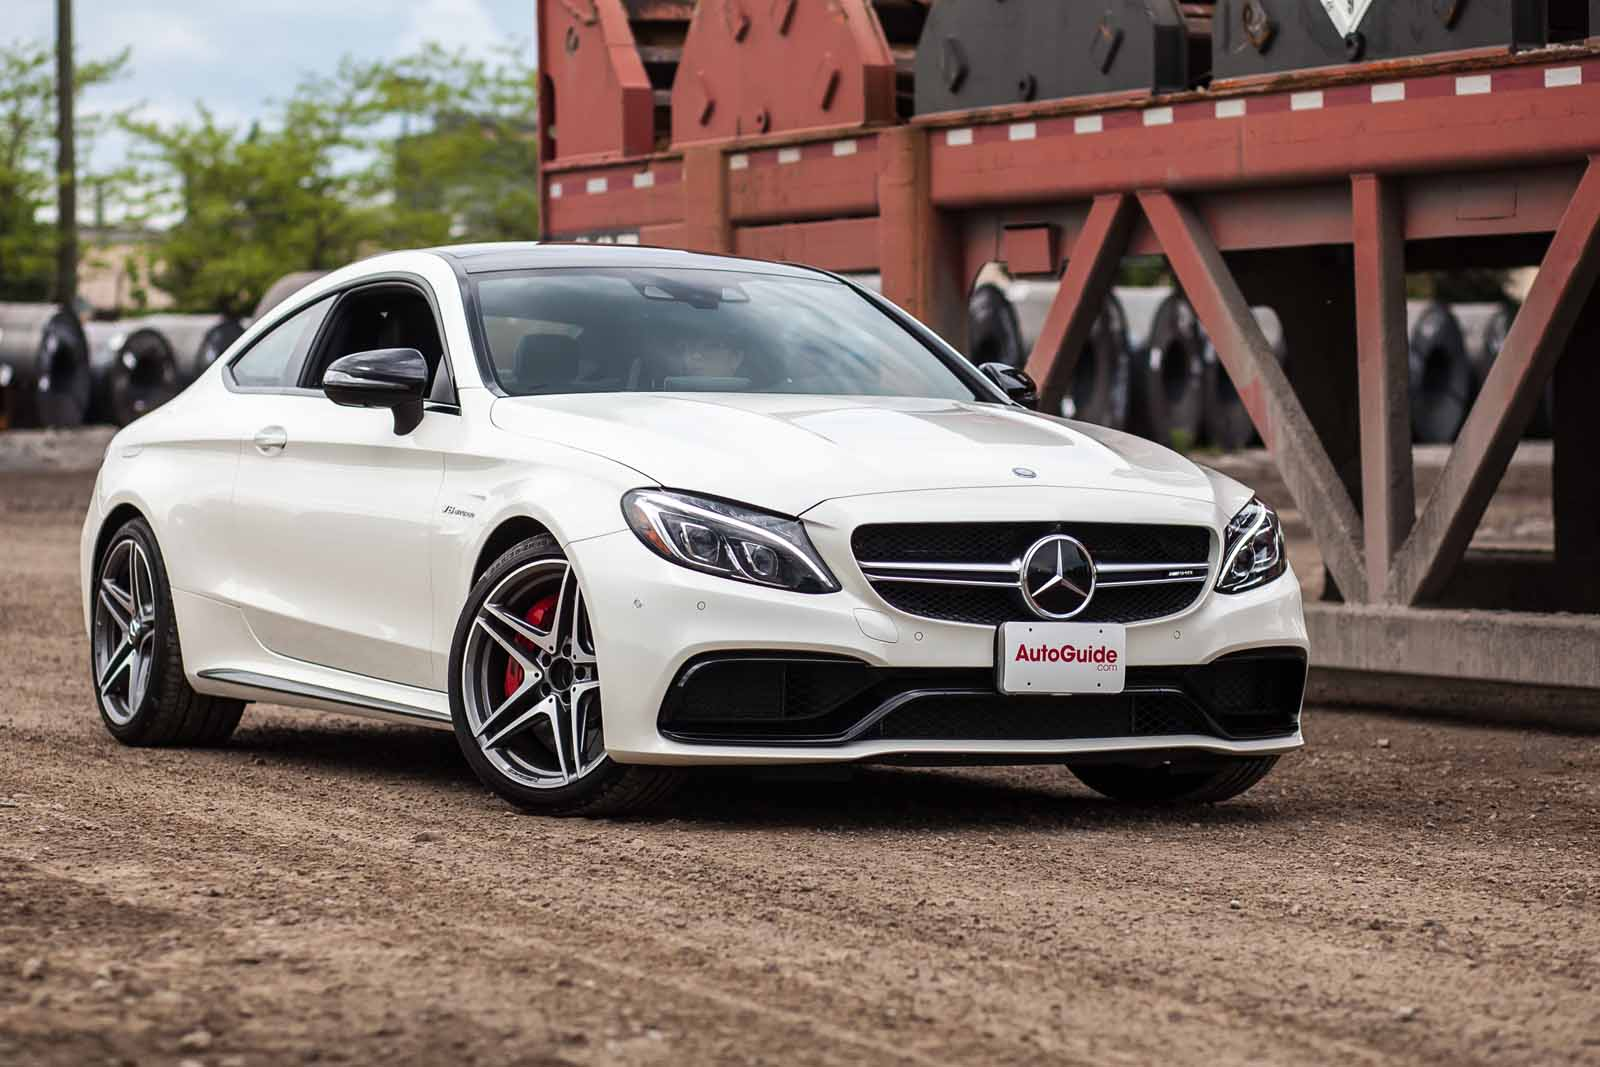 http://www.autoguide.com/blog/wp-content/gallery/2017-mercedes-amg-c63-s-coupe-review/2017-Mercedes-AMG-C63-S-Coupe-Review-CHRIS-SMART-001.jpg